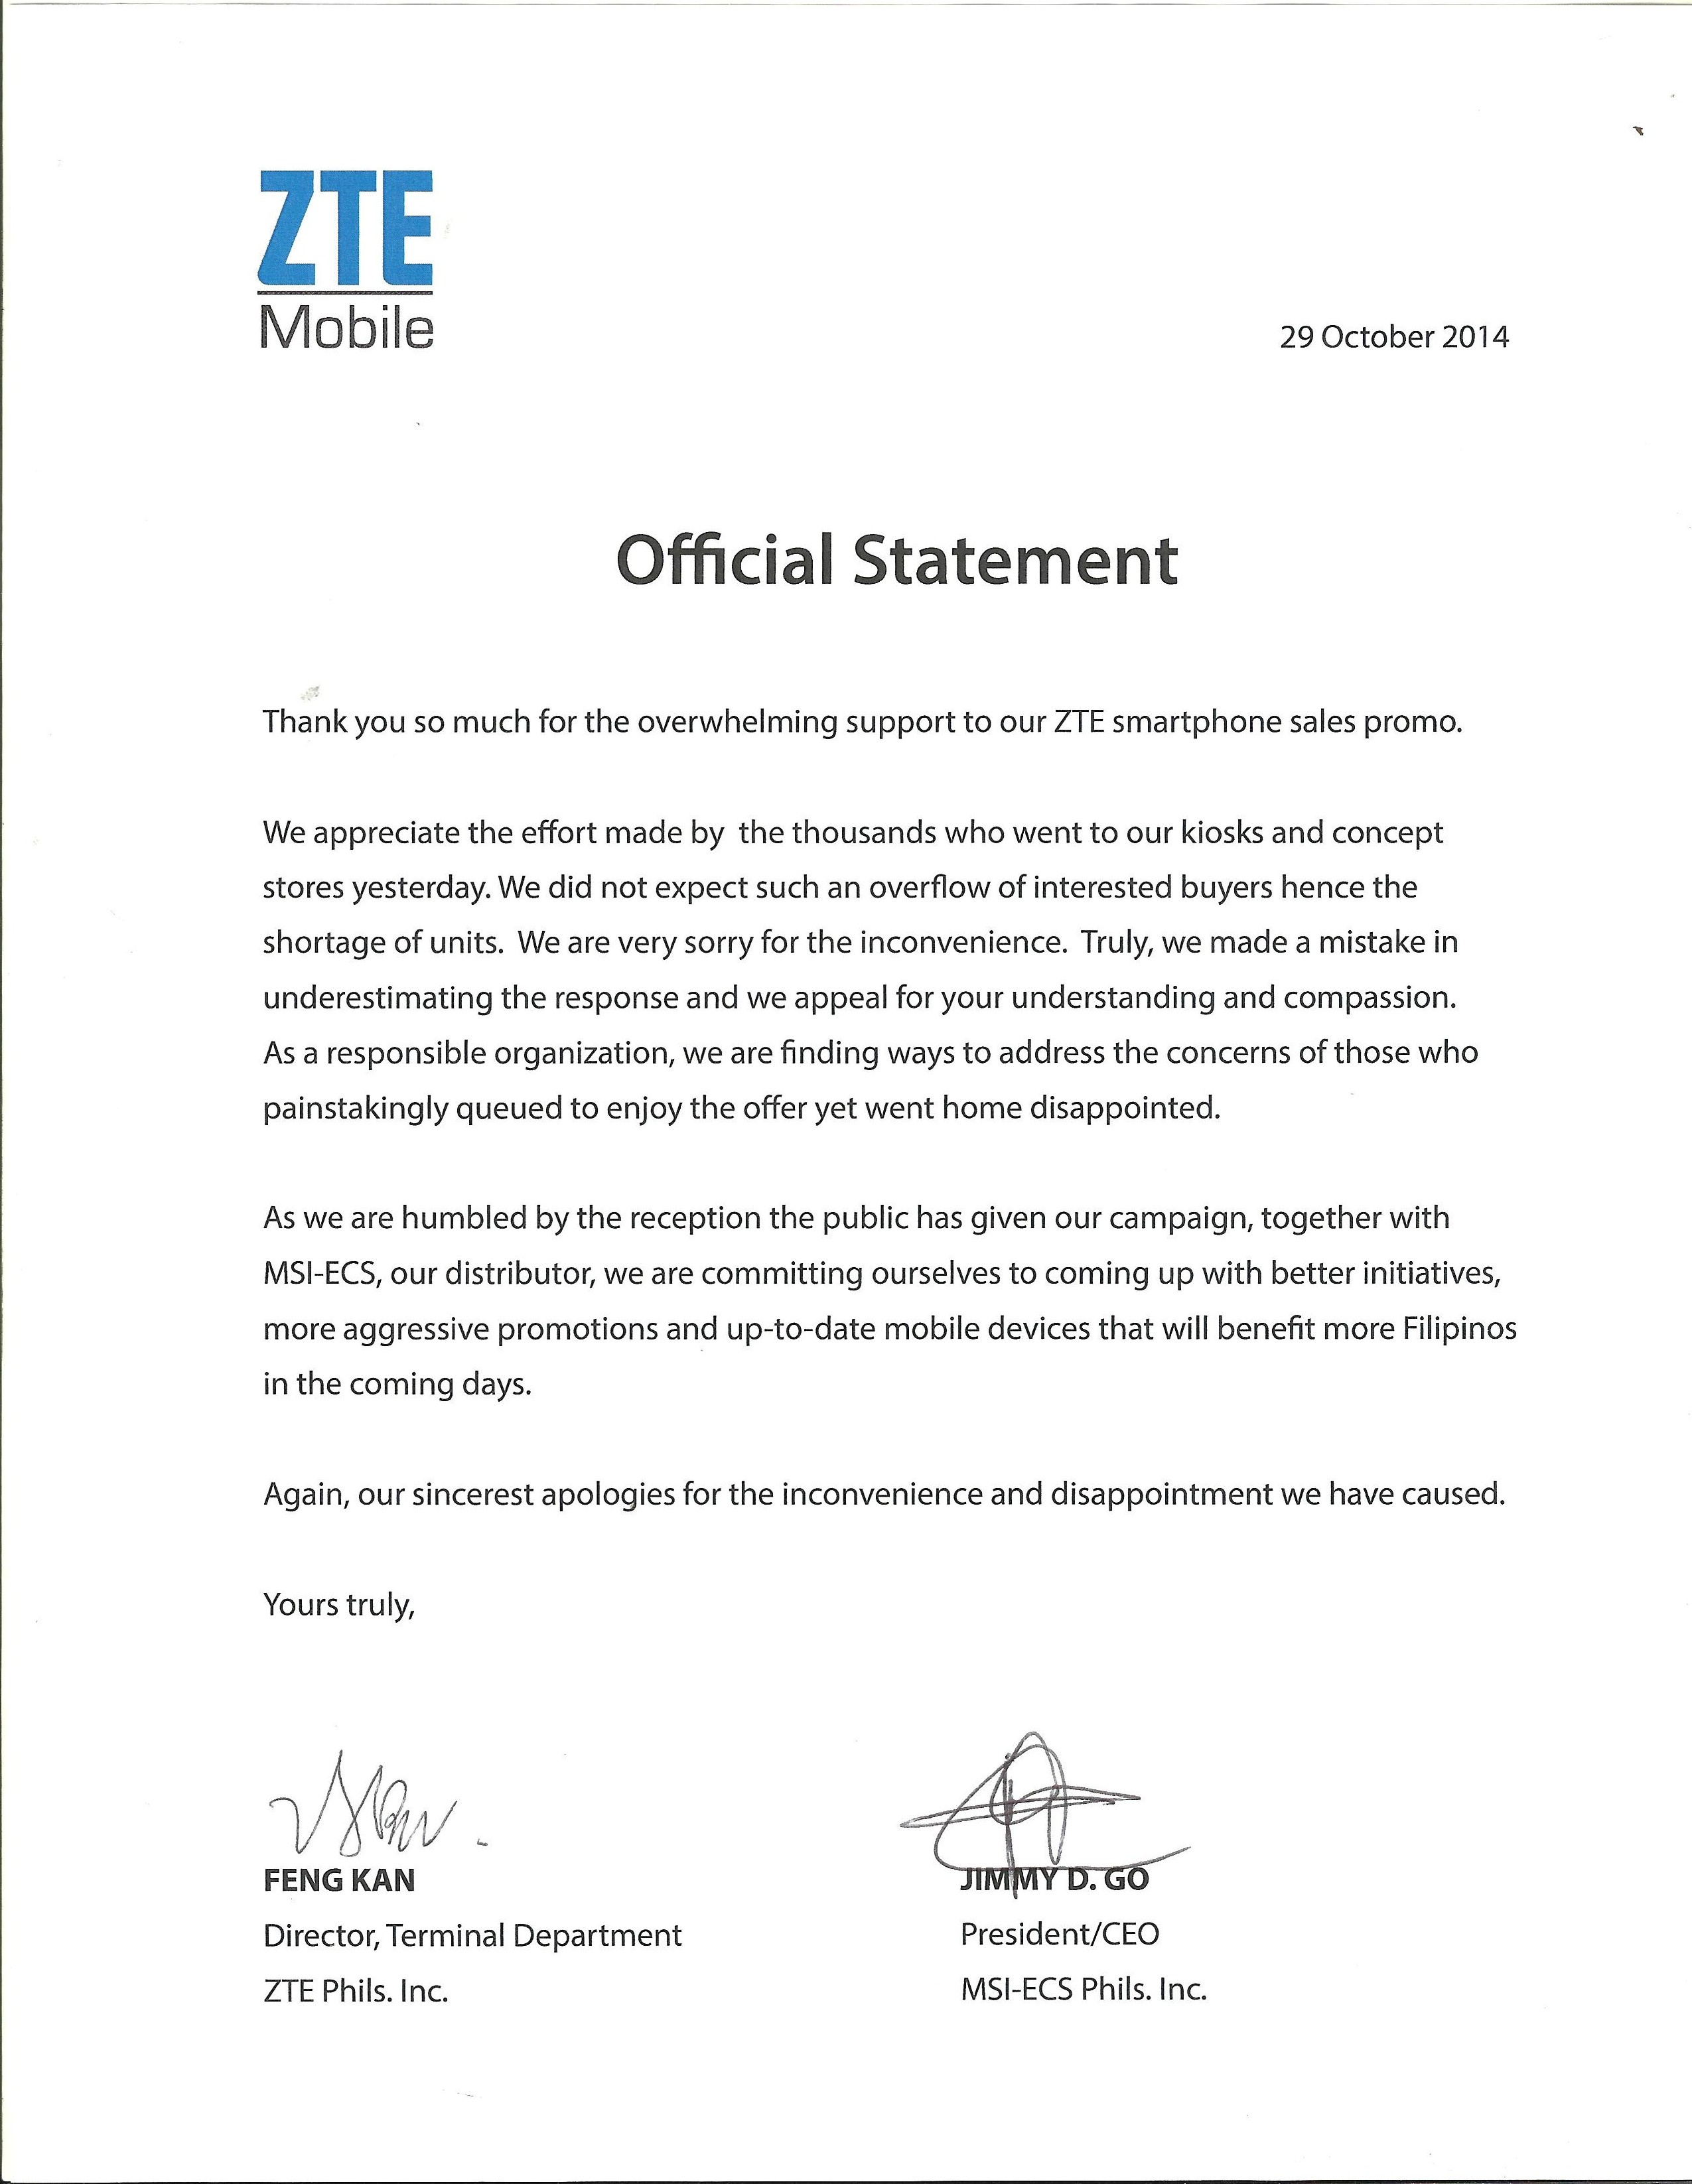 zte u2019s formal apology following their one day sale promo